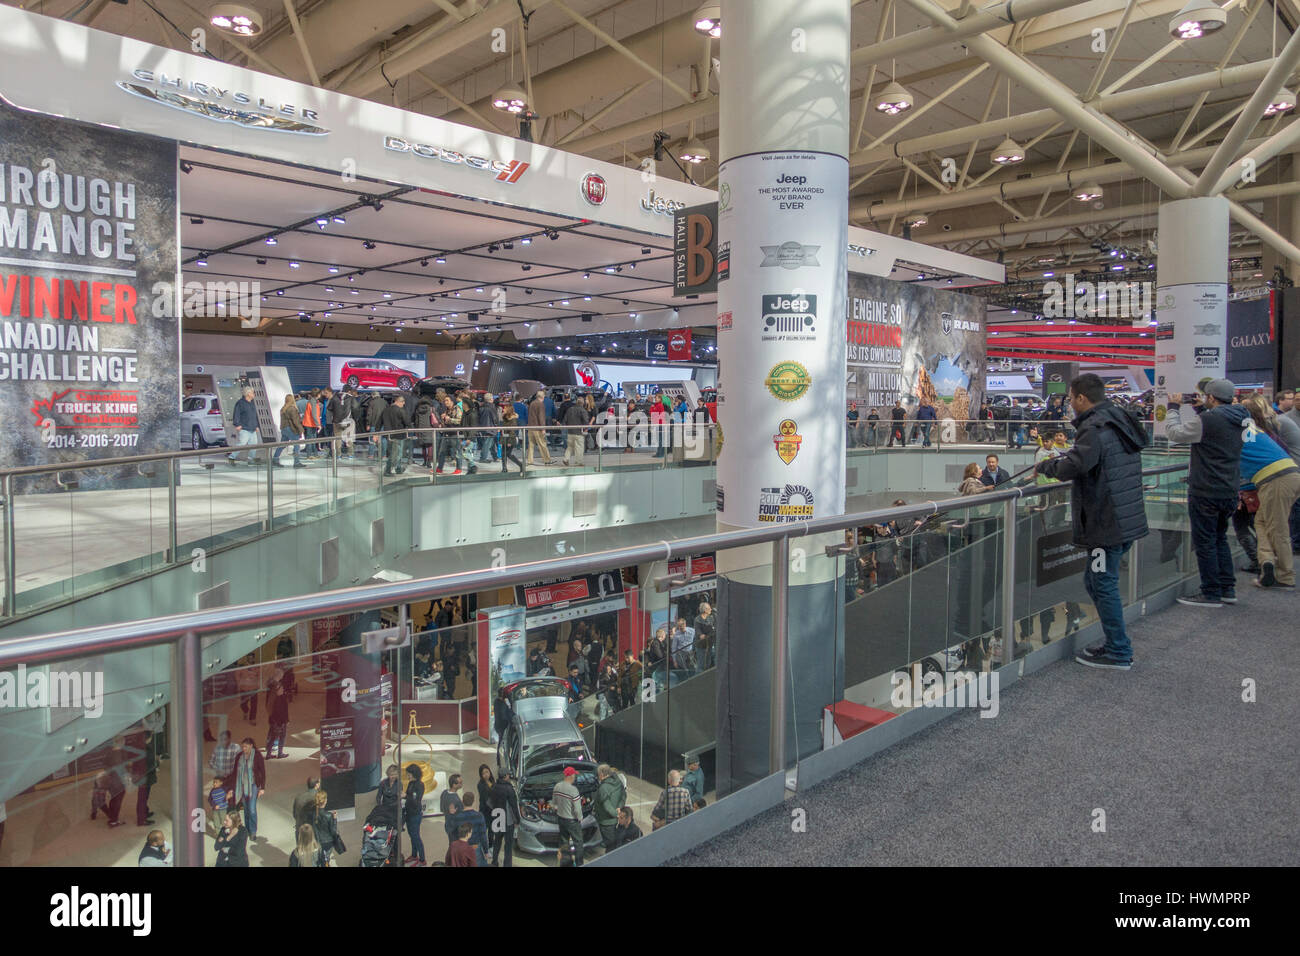 Le Fiat Chrysler Automobiles (FCA) Kiosque d'exposition au Salon International de l'Auto 2017 Toronto Canada Photo Stock